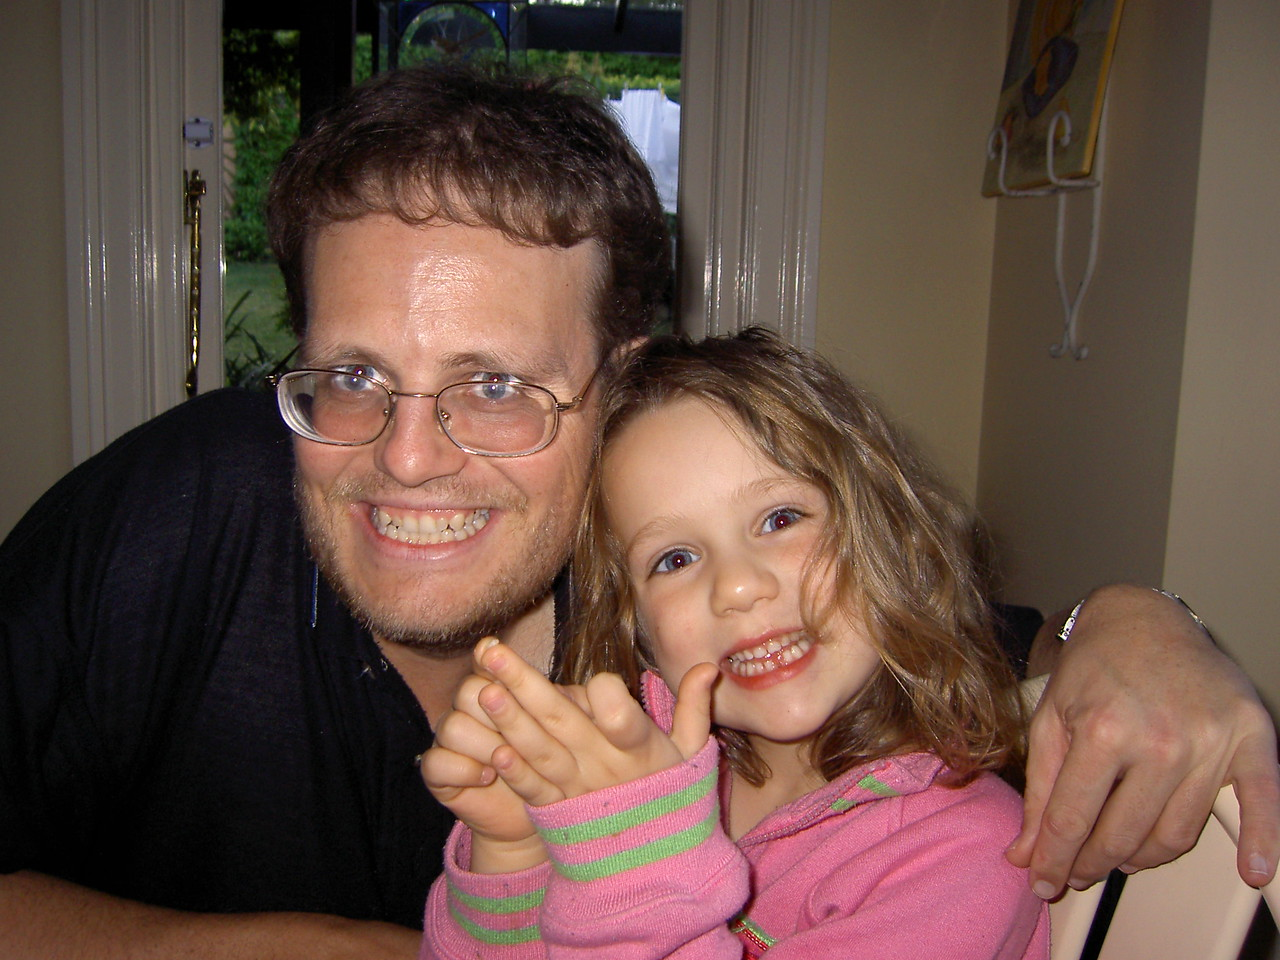 Anthony and Abigail: Abby lost her first tooth!